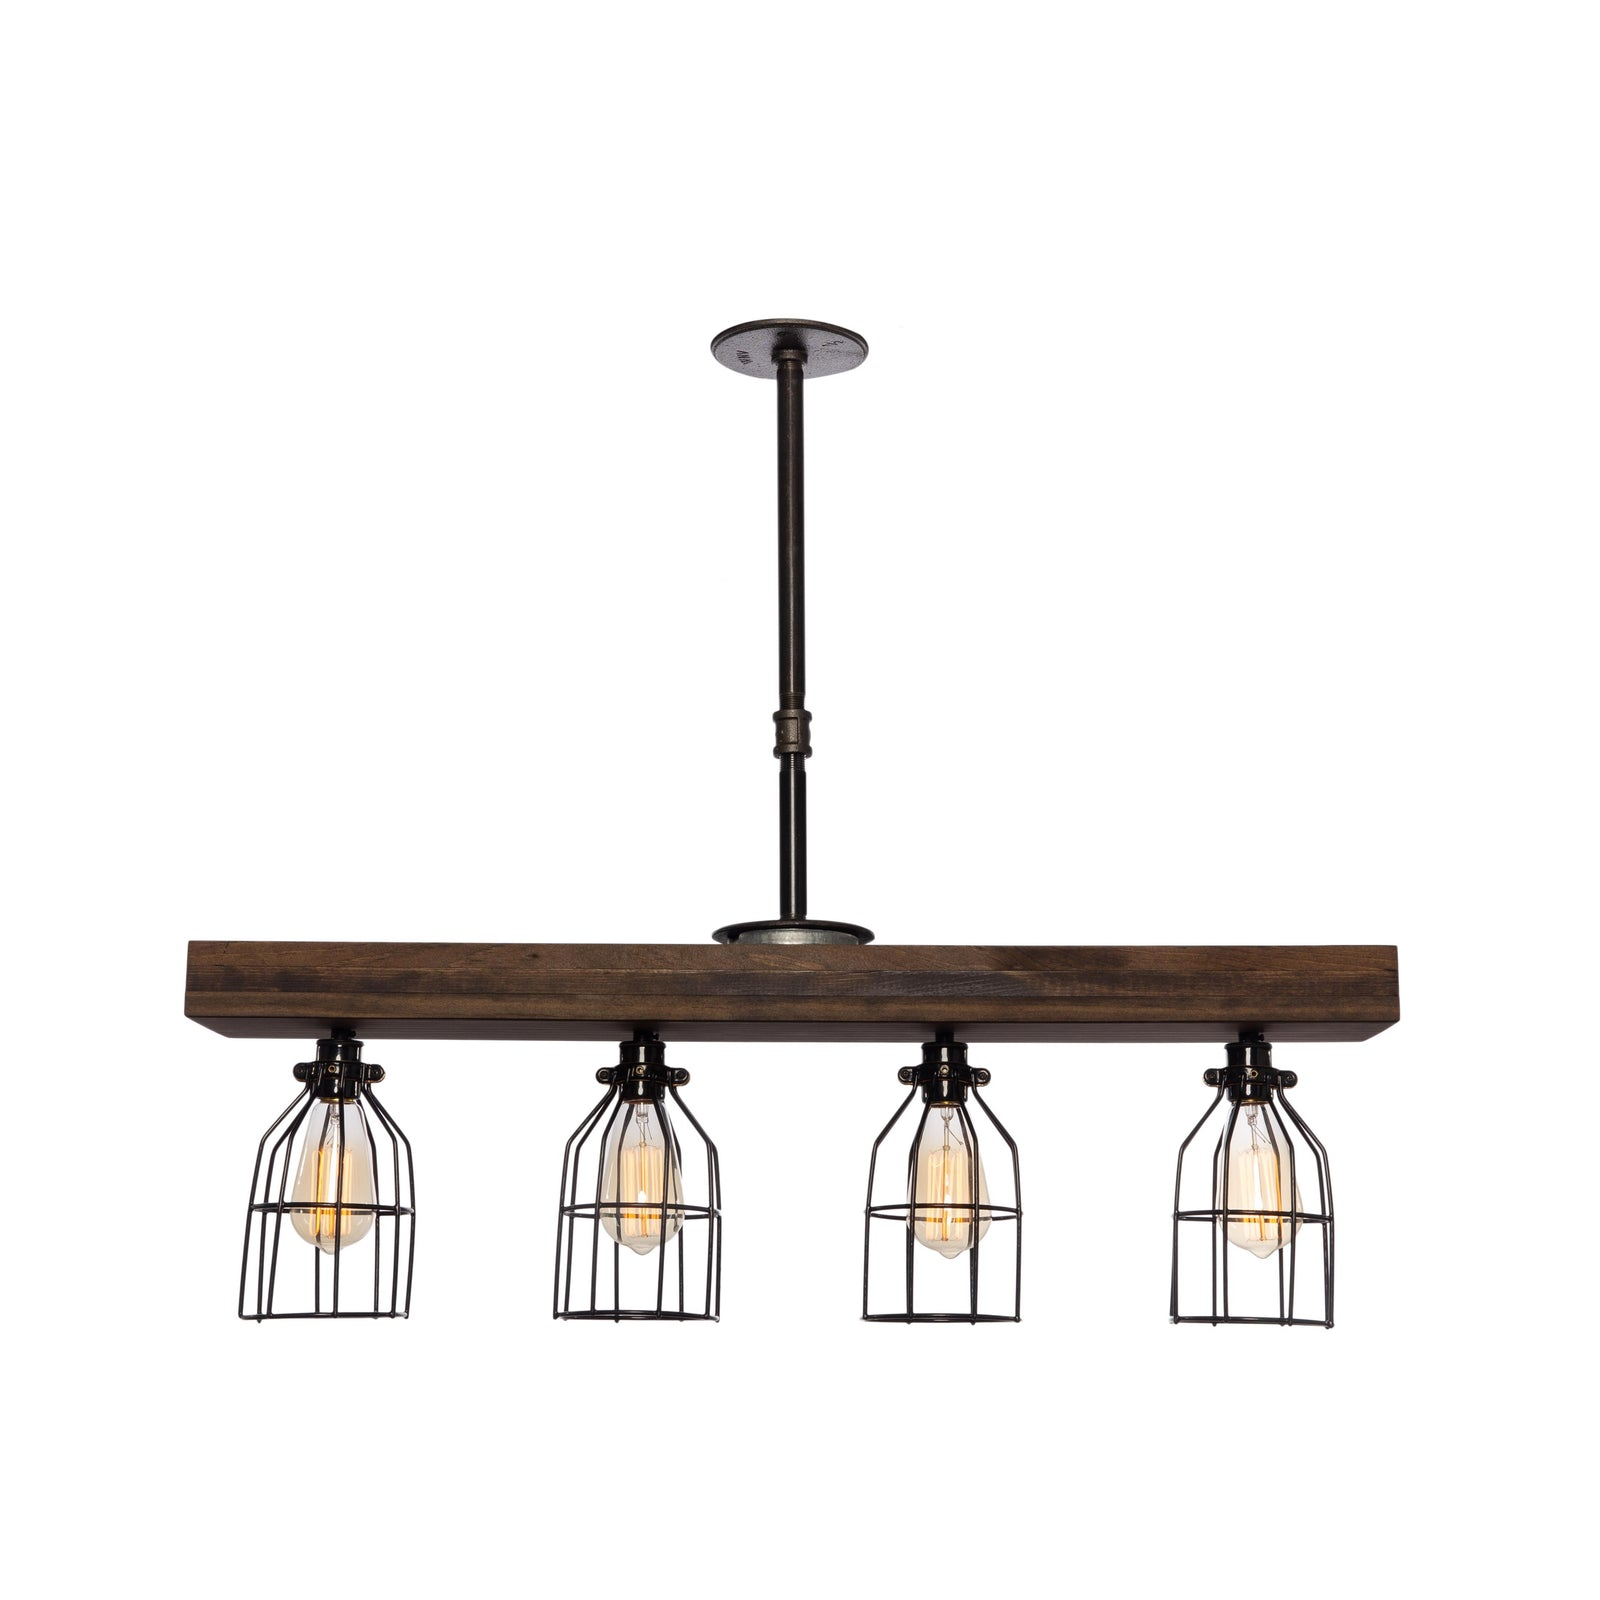 Farmhouse Rustic Industrial Light Fixtures By West Ninth Vintage